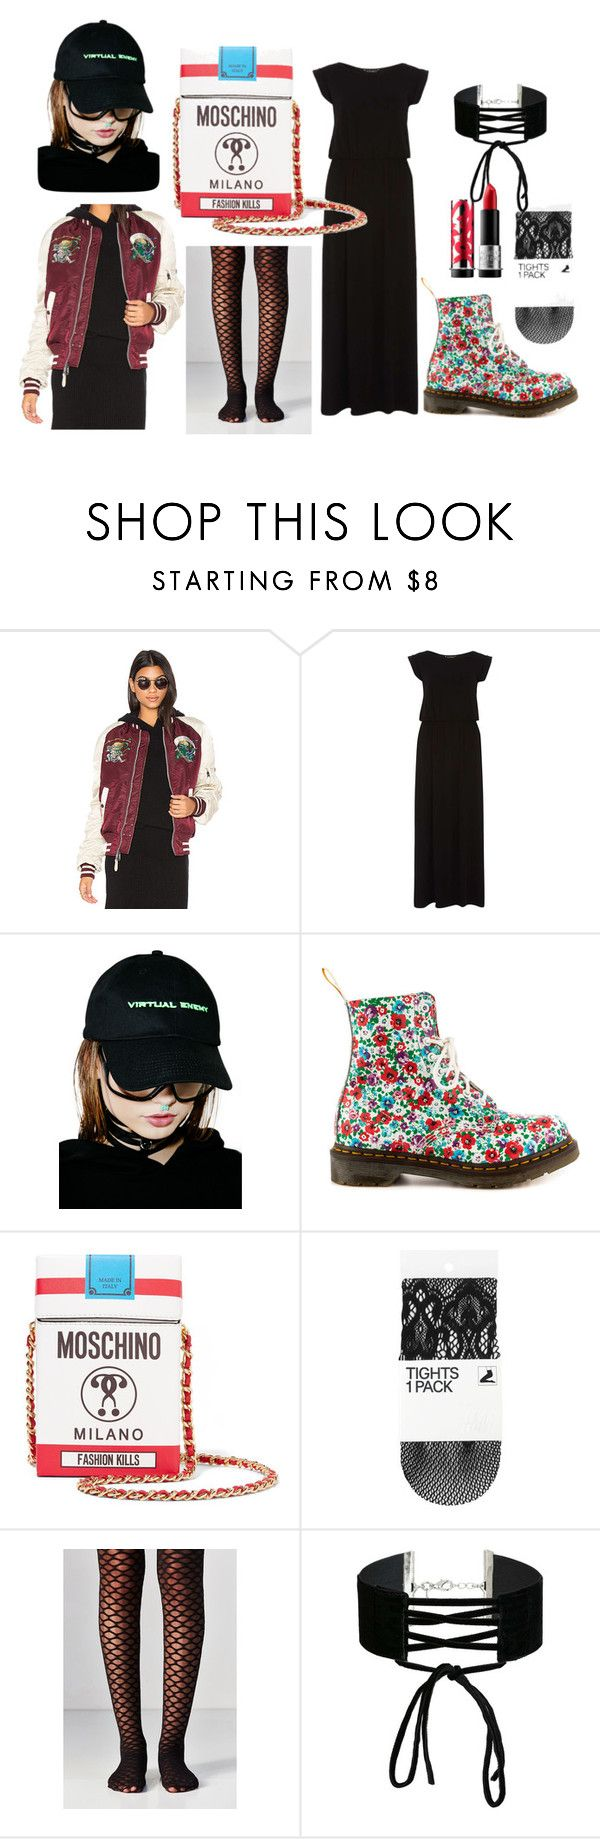 """#untitled3"" by yuna92 on Polyvore featuring Alpha Industries, Dorothy Perkins, Brashy, Dr. Martens, Moschino, Out From Under, Miss Selfridge and MAKE UP FOR EVER"